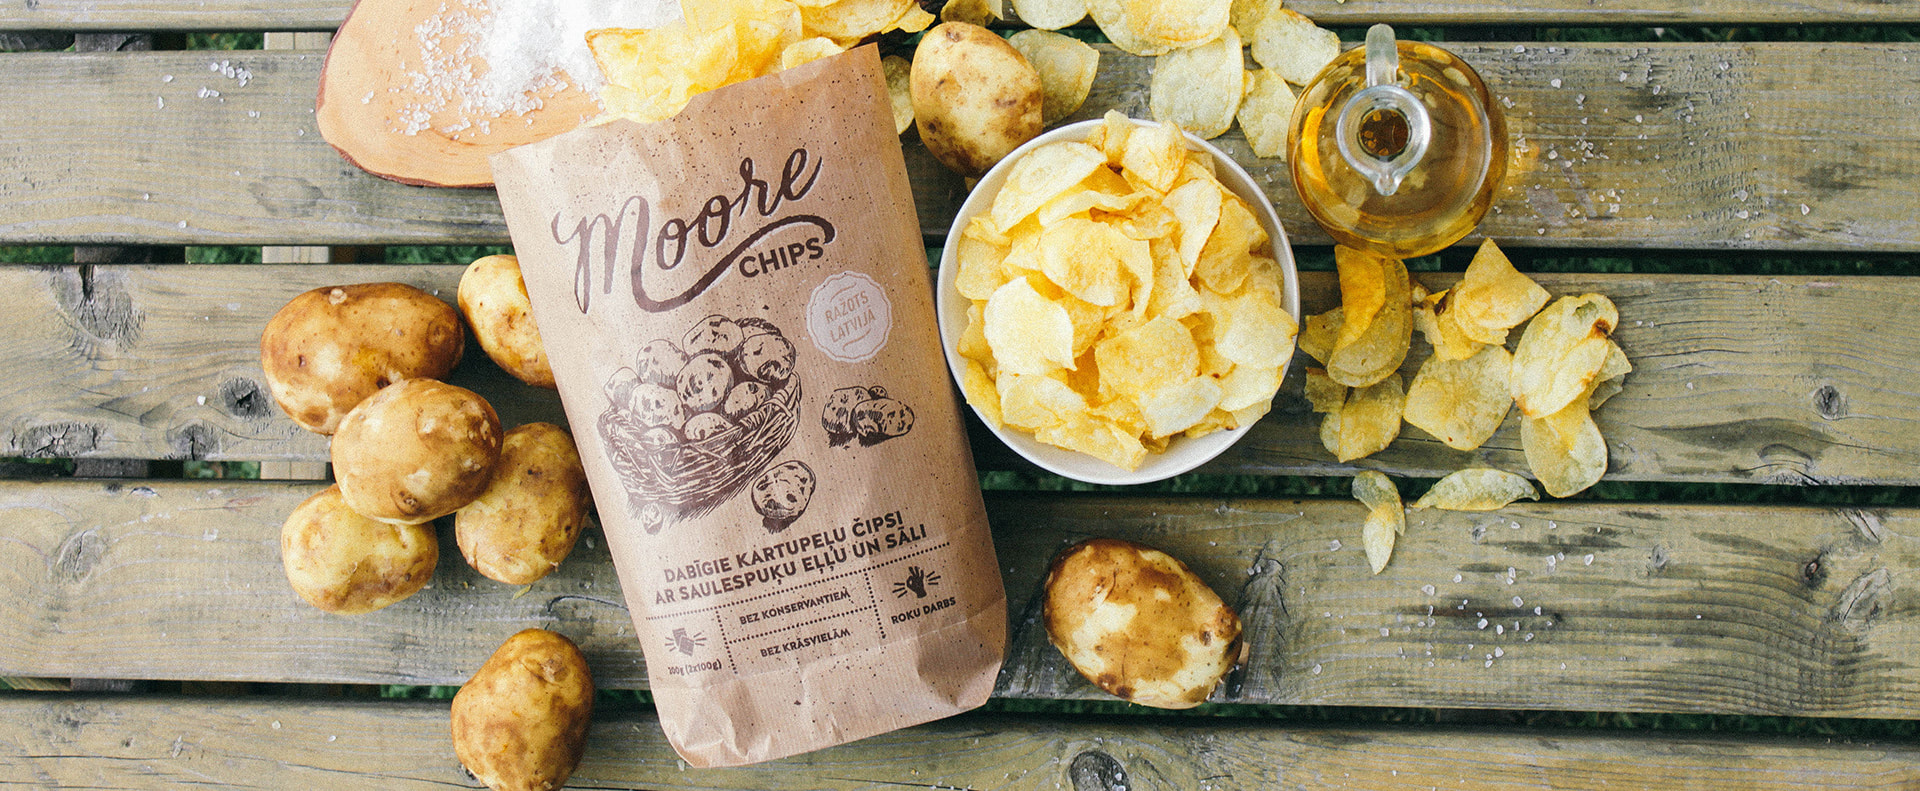 Moore Chips Review